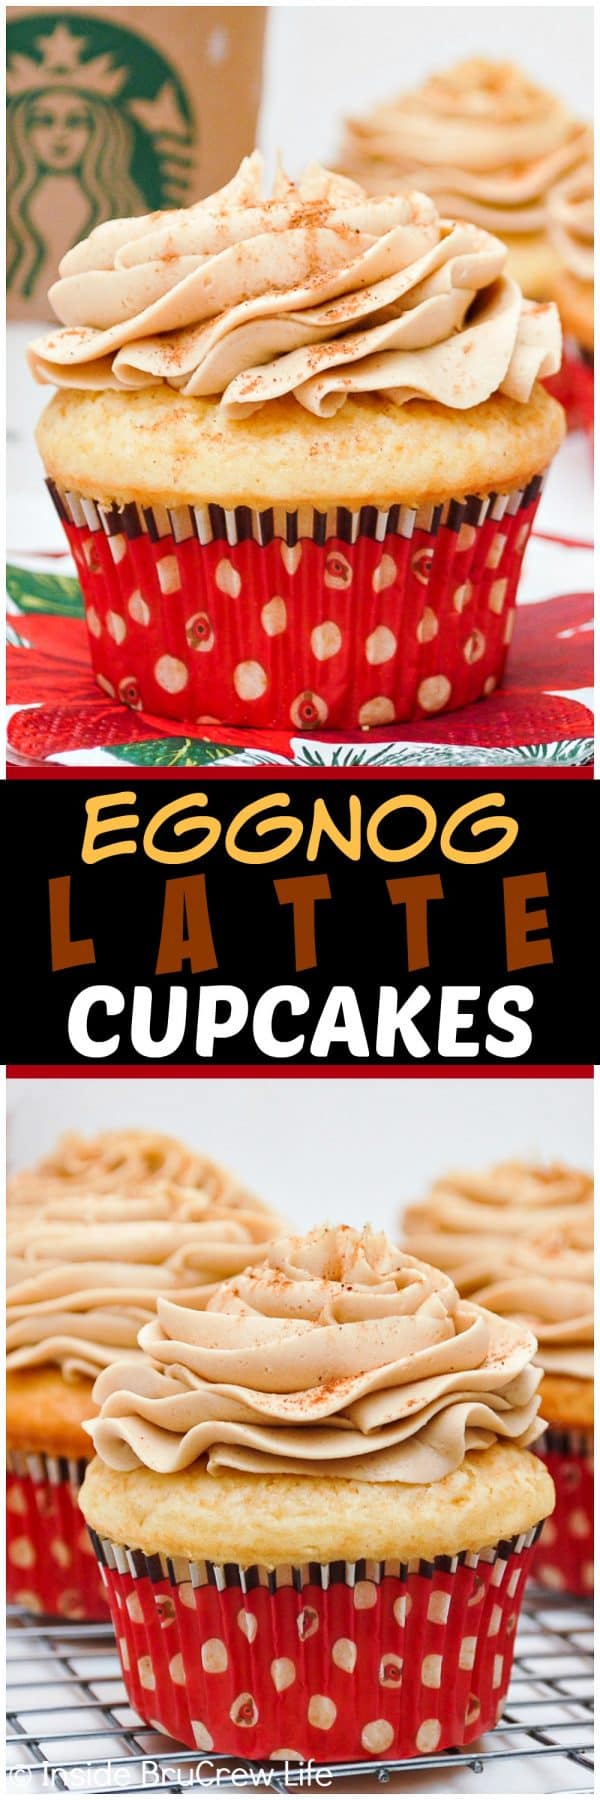 Eggnog Latte Cupcakes - a swirl of coffee frosting on an eggnog cupcake tastes like the popular coffee drink. Great recipe for Christmas parties!